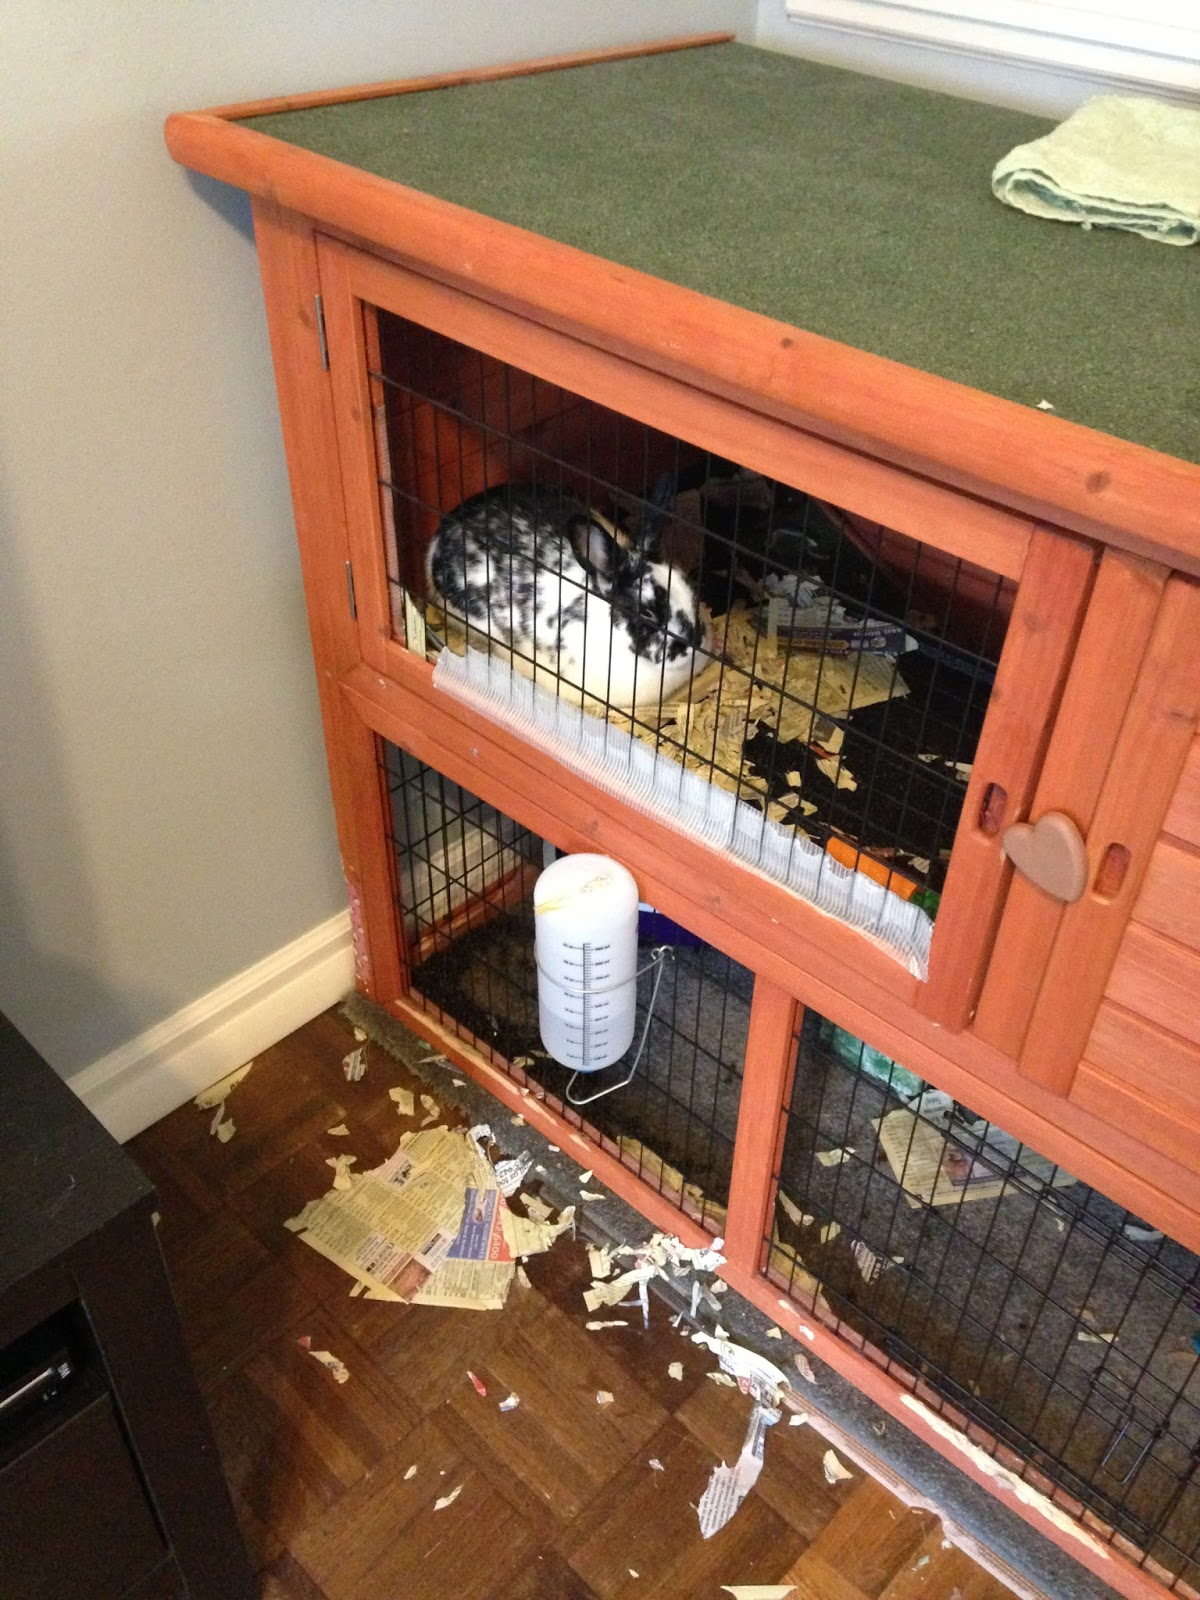 This Is What A Post Bunny Rager Looks Like: